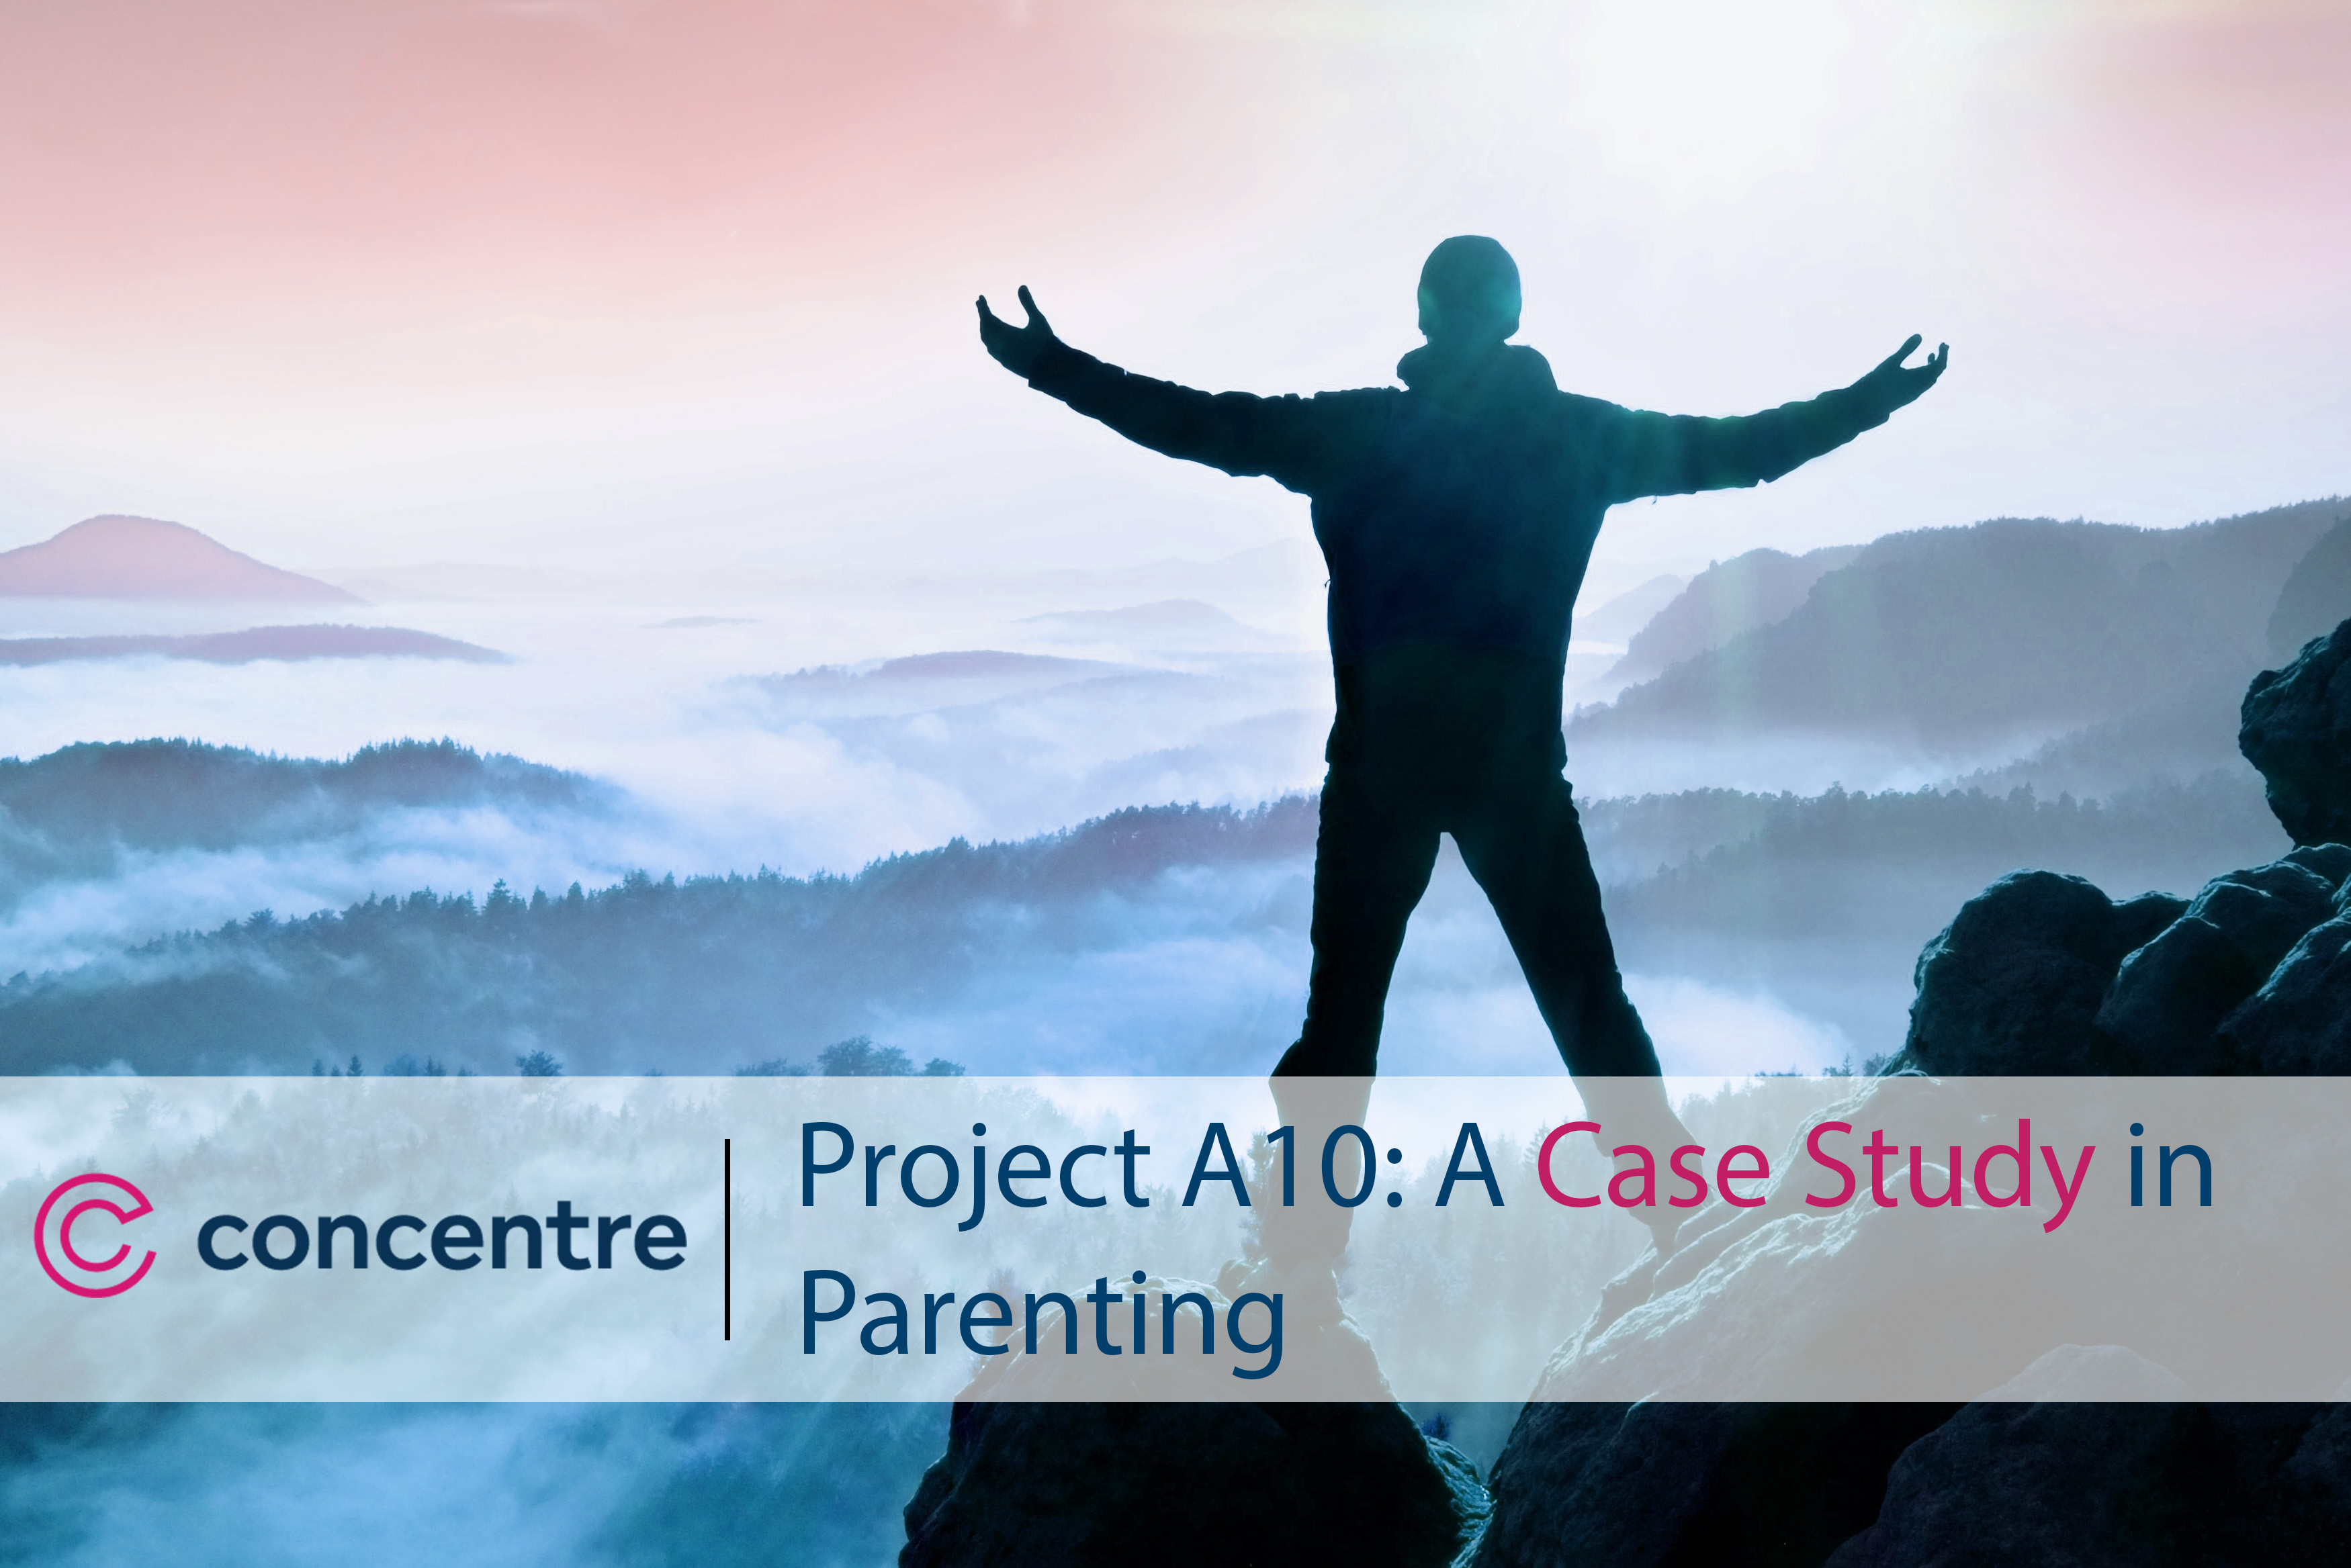 Project A10: A Case Study in Parenting